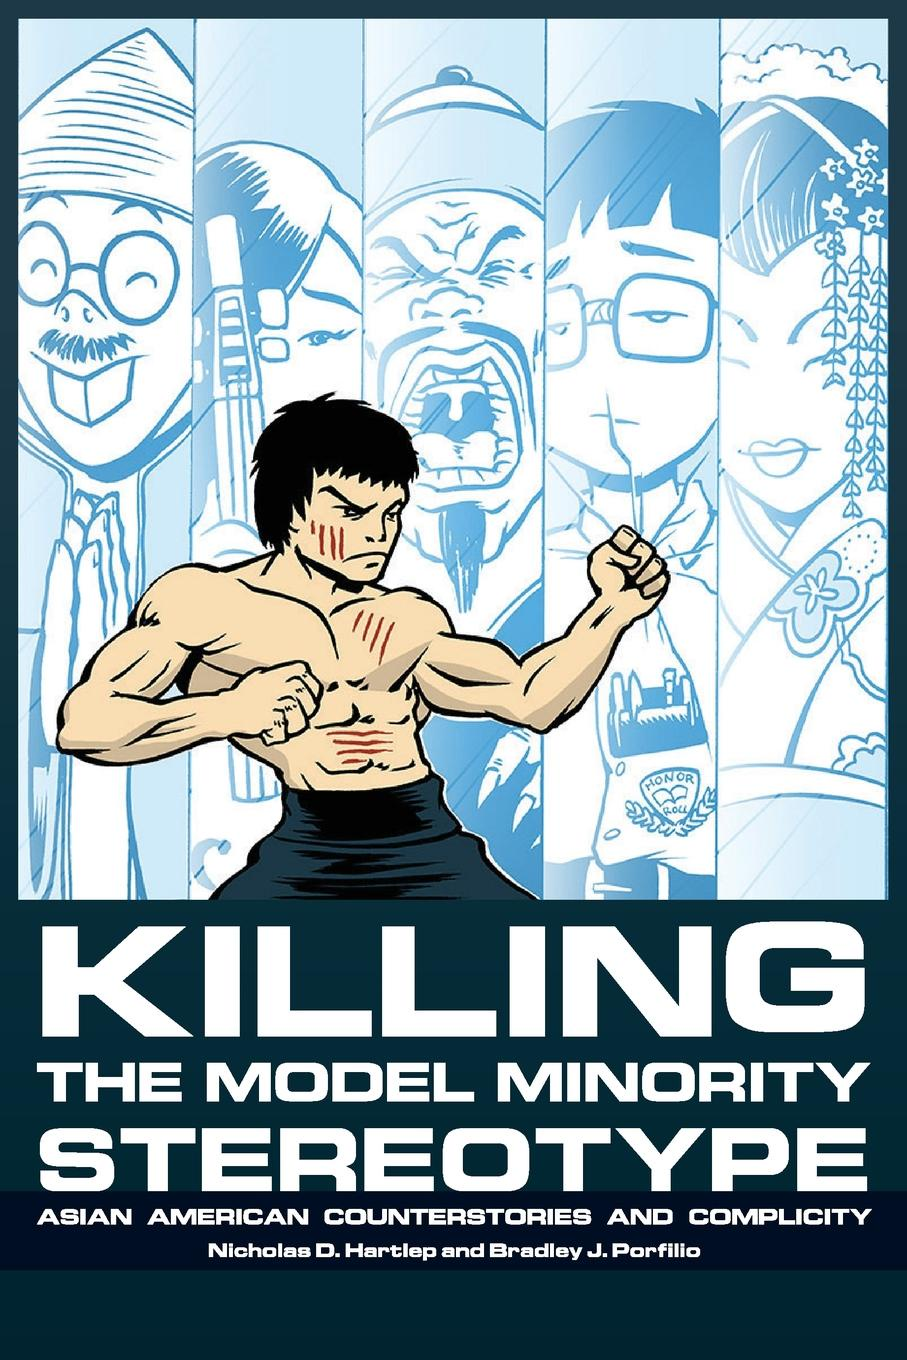 Killing the Model Minority Stereotype. Asian American Counterstories and Complicity copycat killing